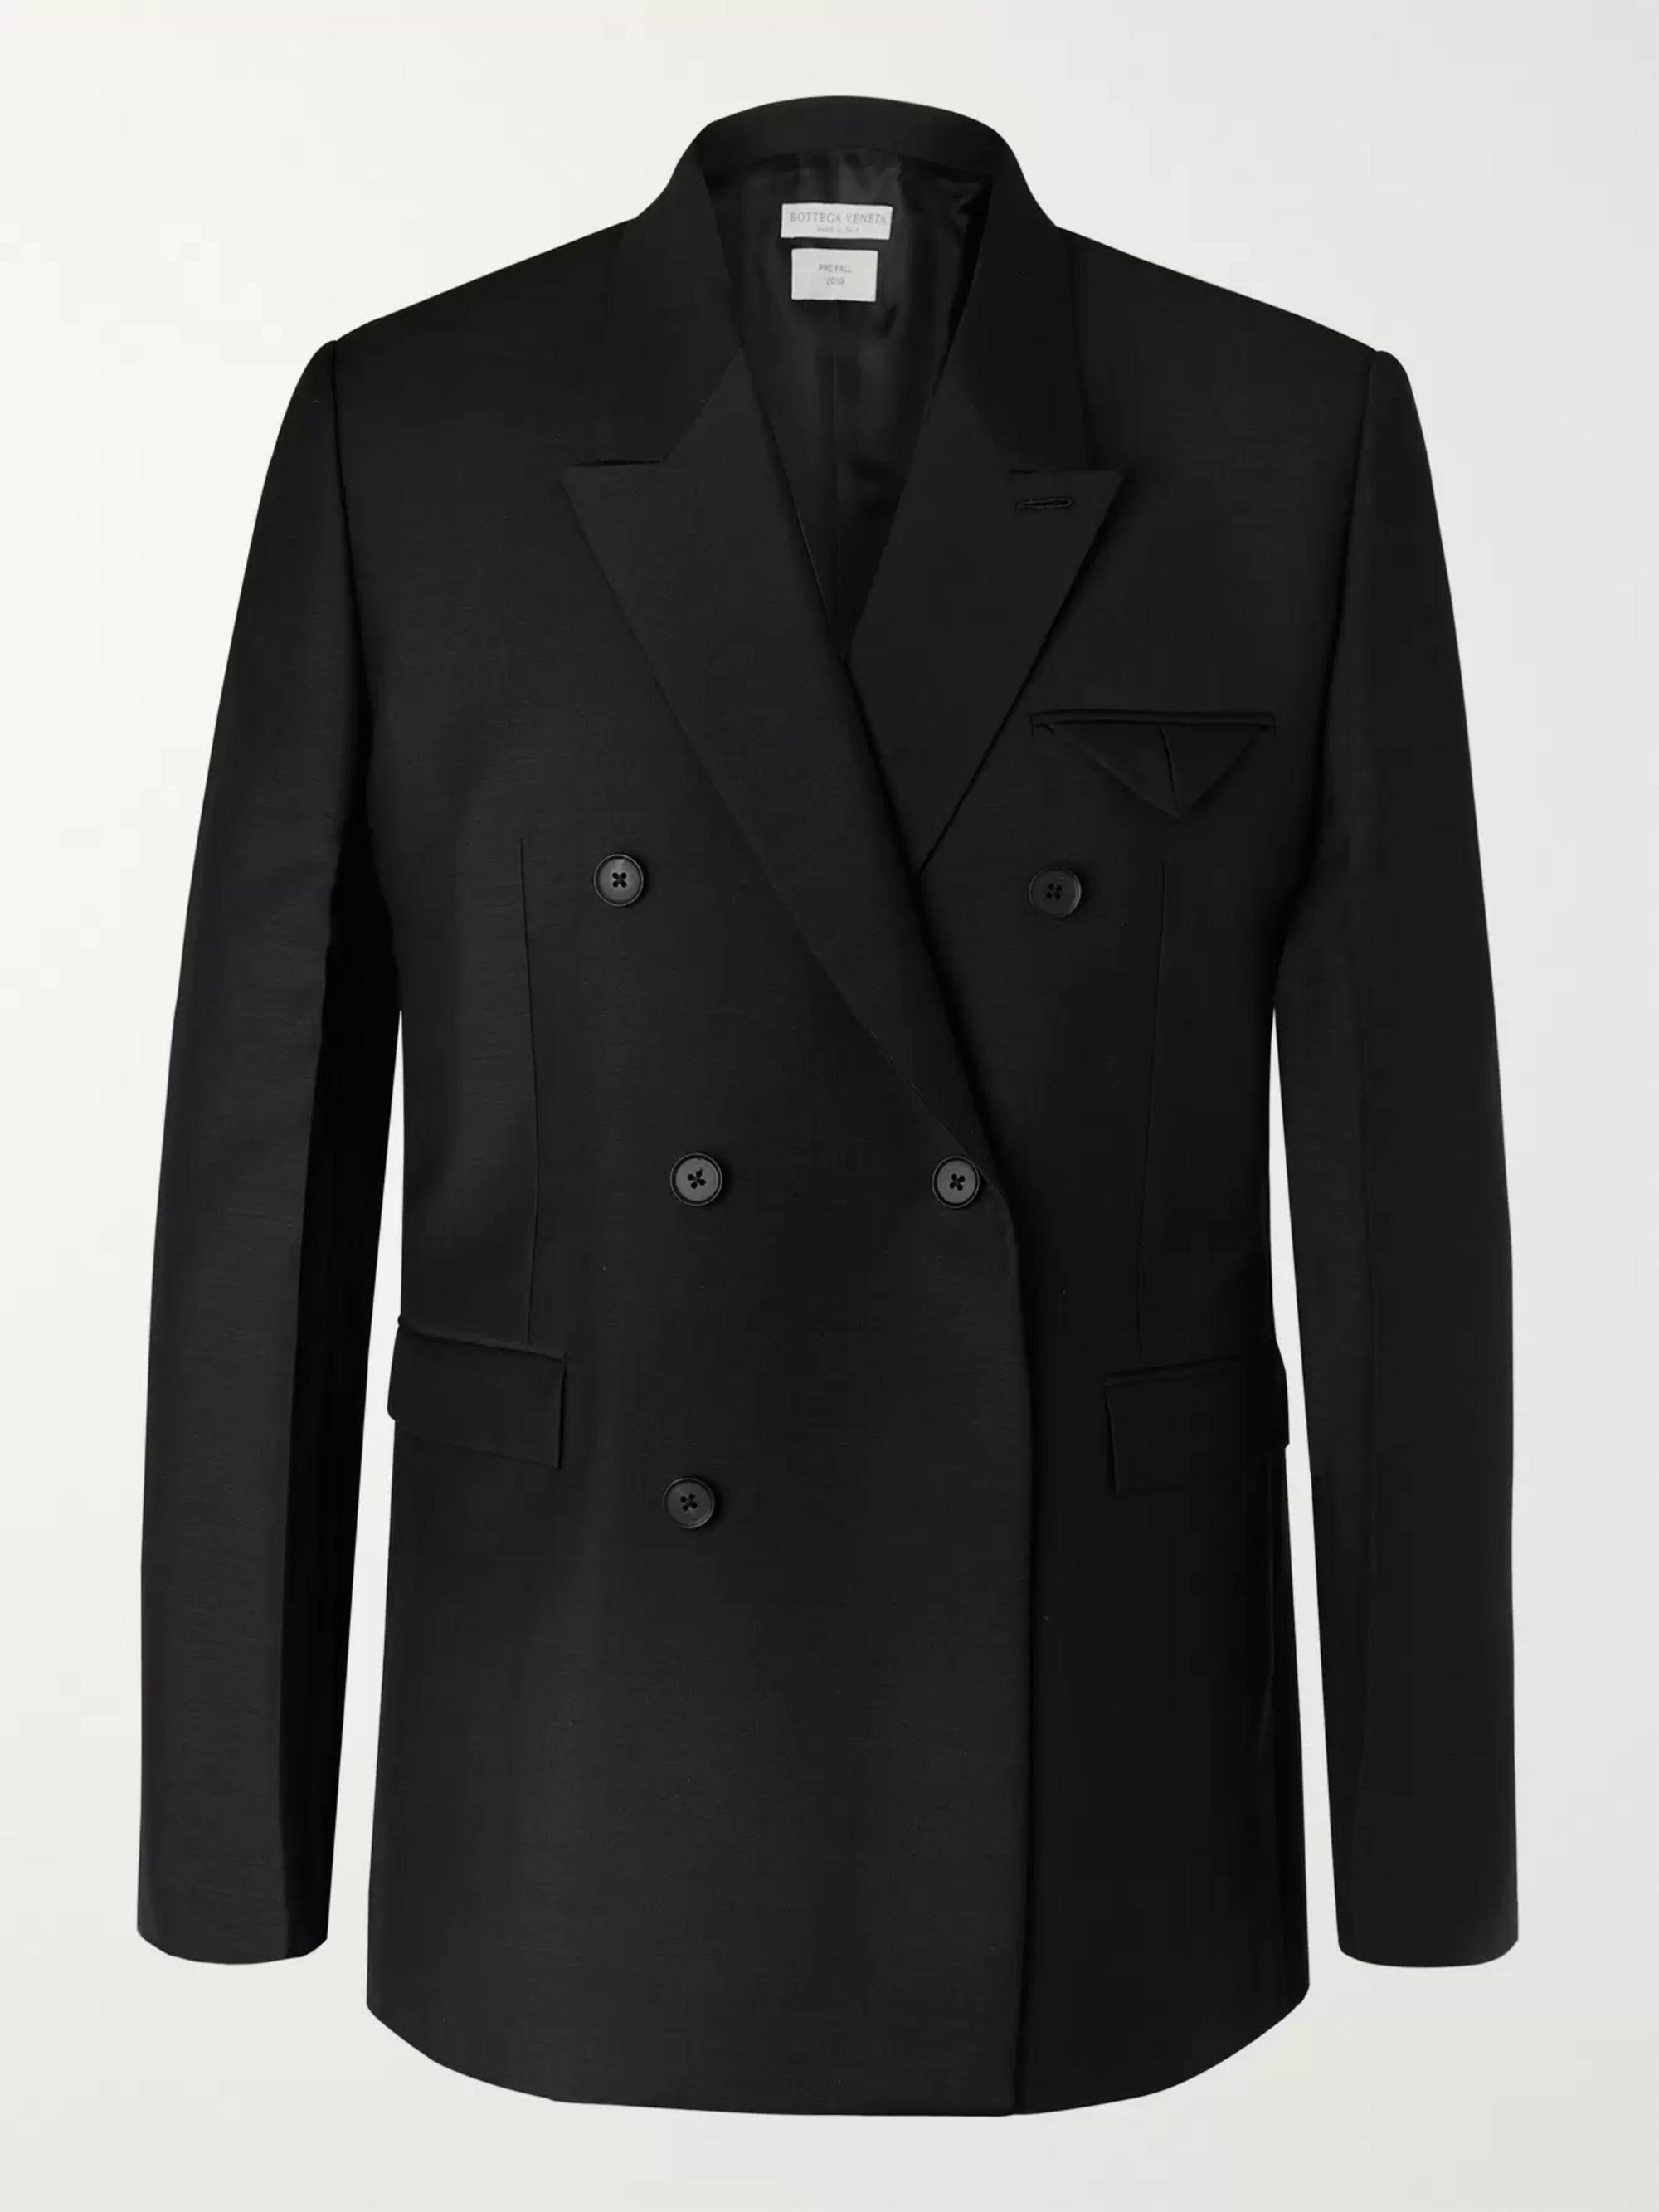 Bottega Veneta Black Double-Breasted Worsted Mohair and Wool-Blend Blazer